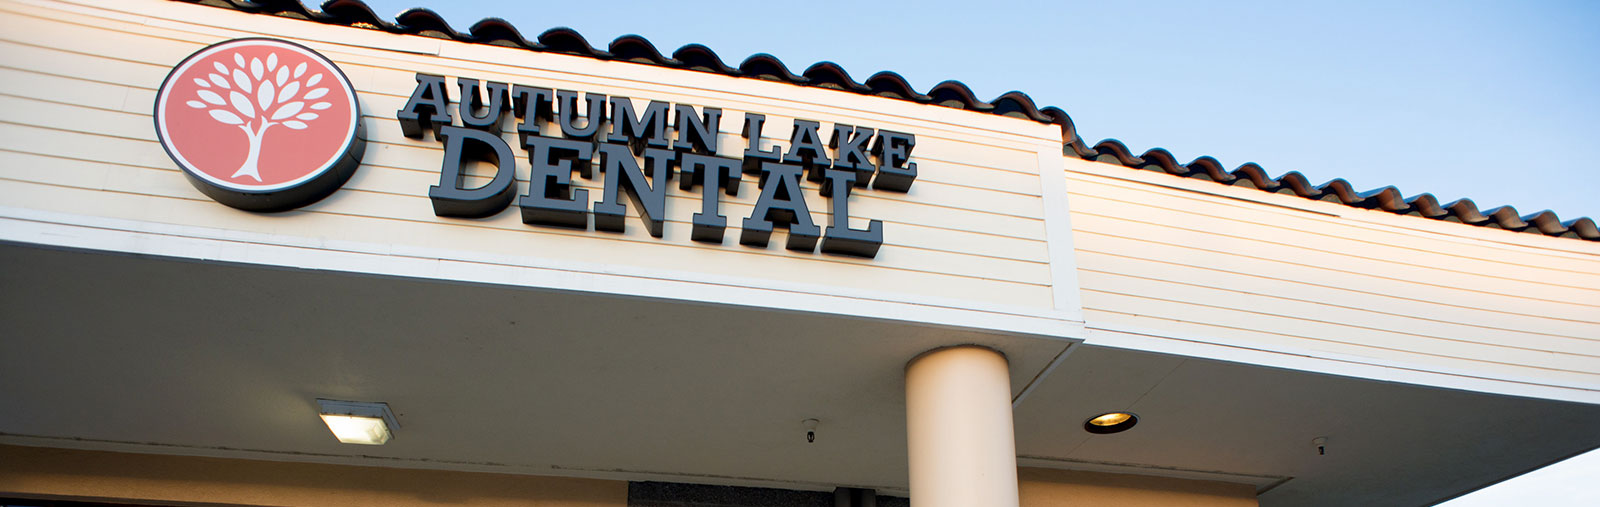 Autumn Lake Dental Services in Oakley CA